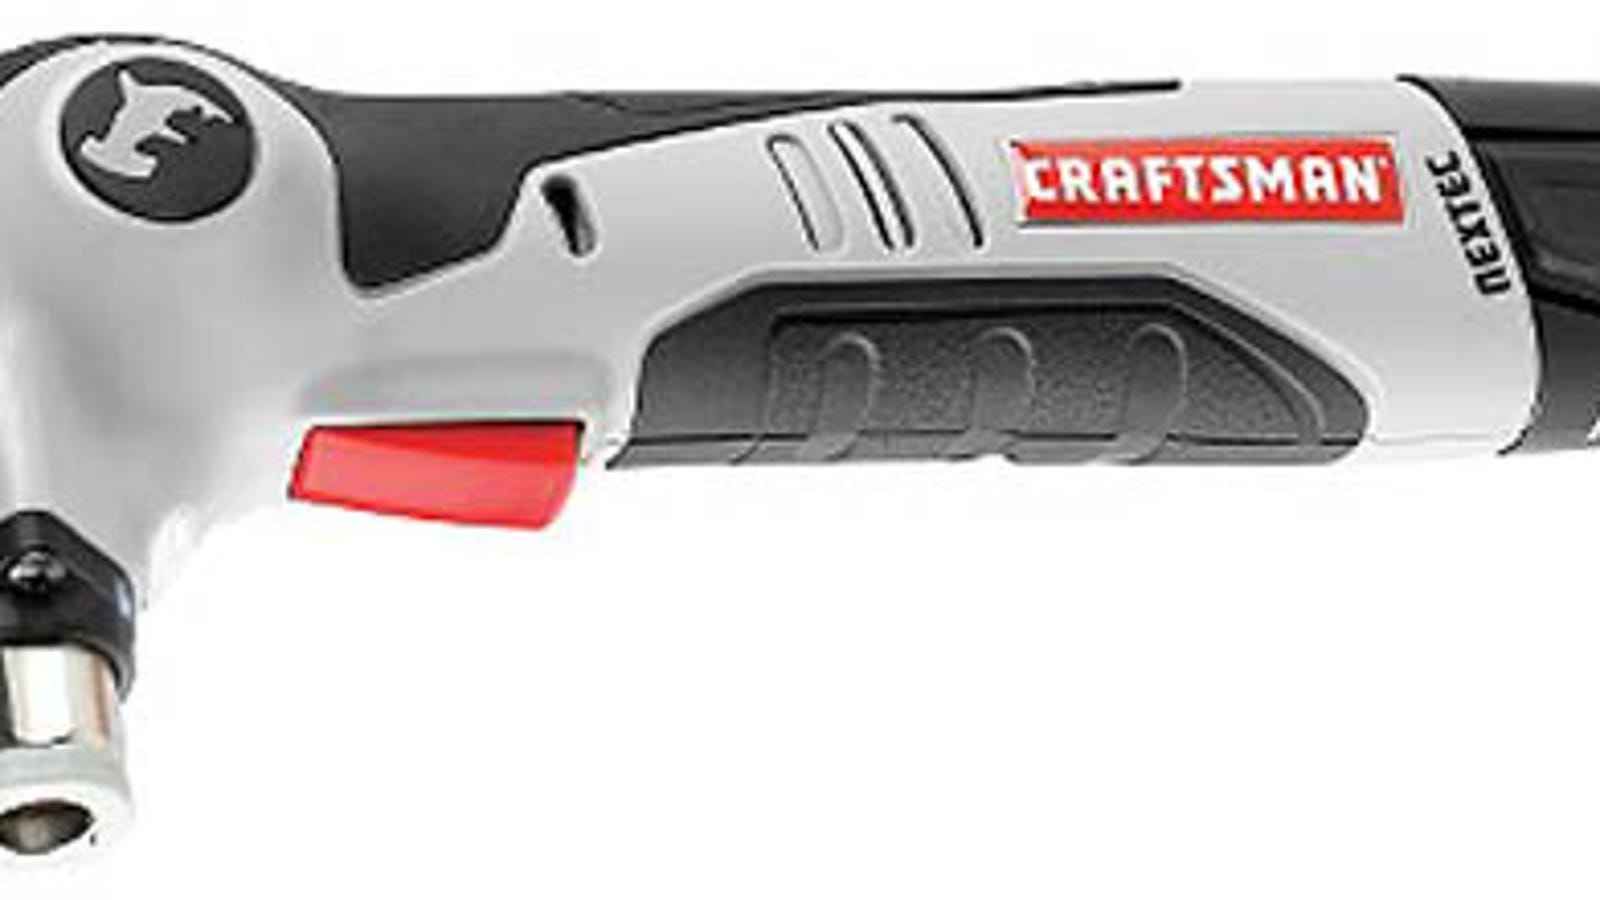 Craftsman Electric Hammer Automates The Process Of Us Never Building Anything